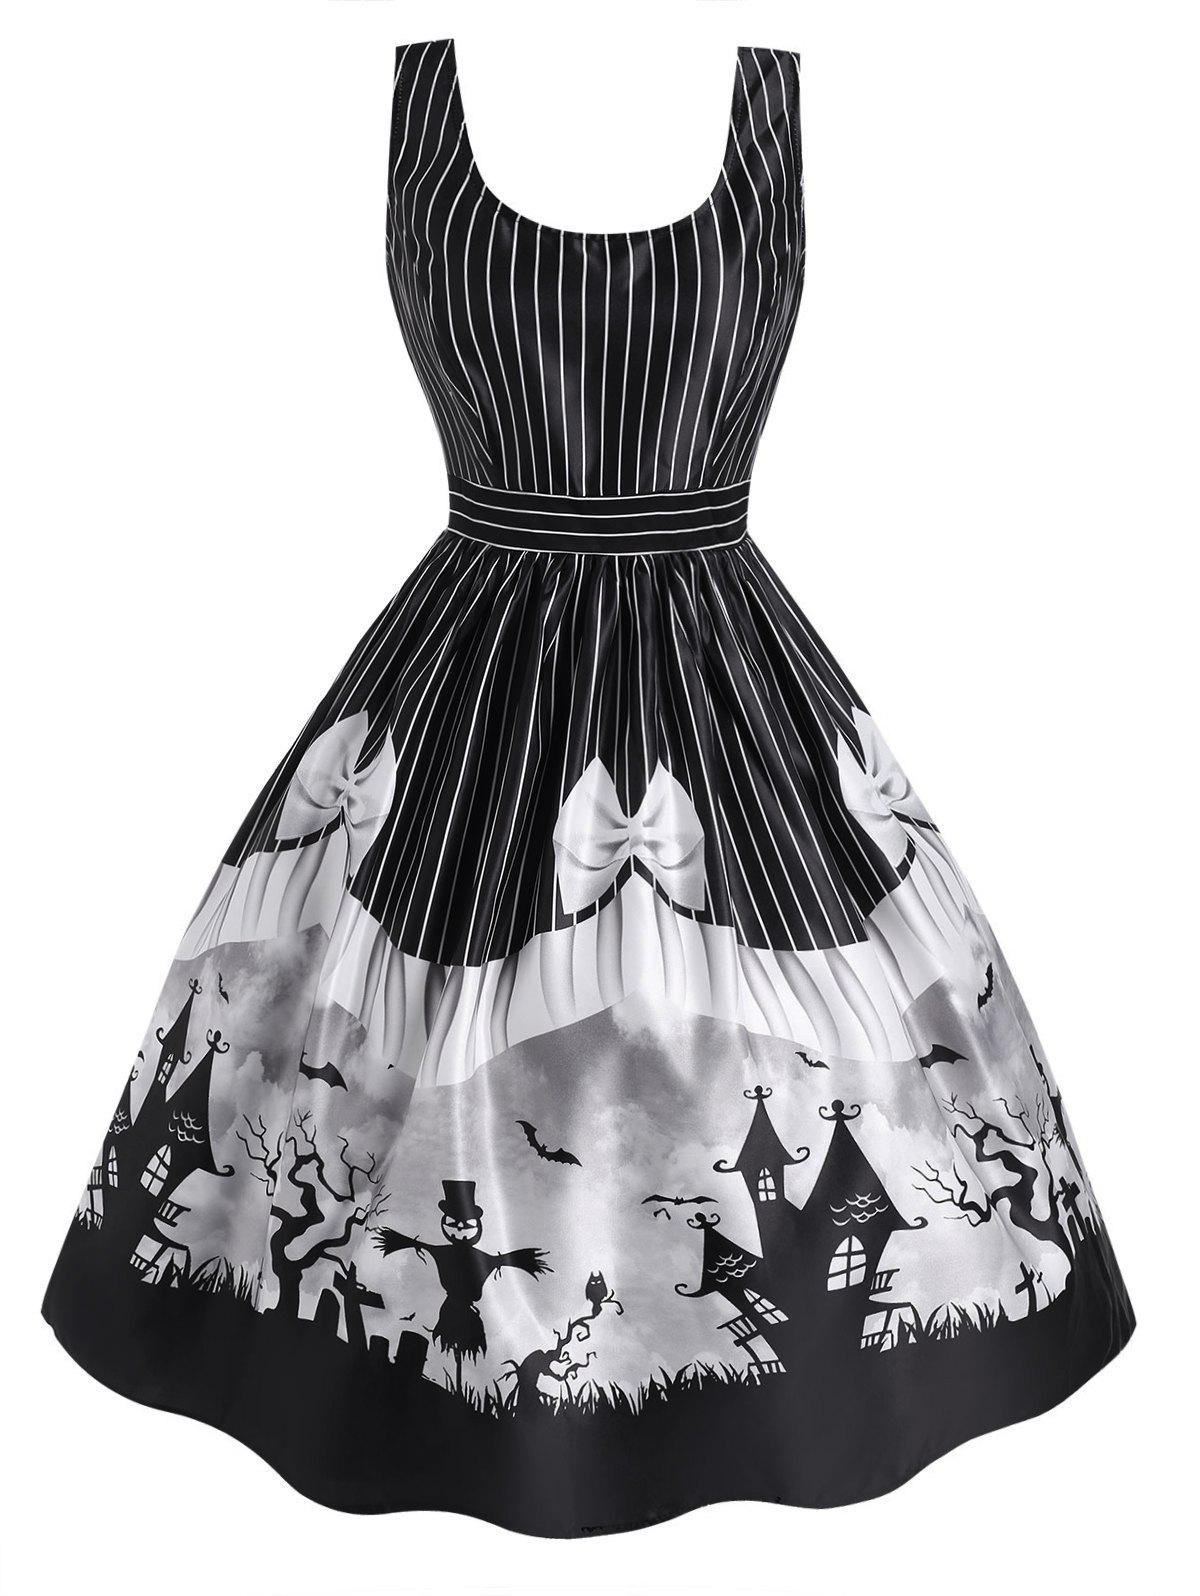 Halloween Striped Castle Bowknot Print Sleeveless Dress - BLACK XL